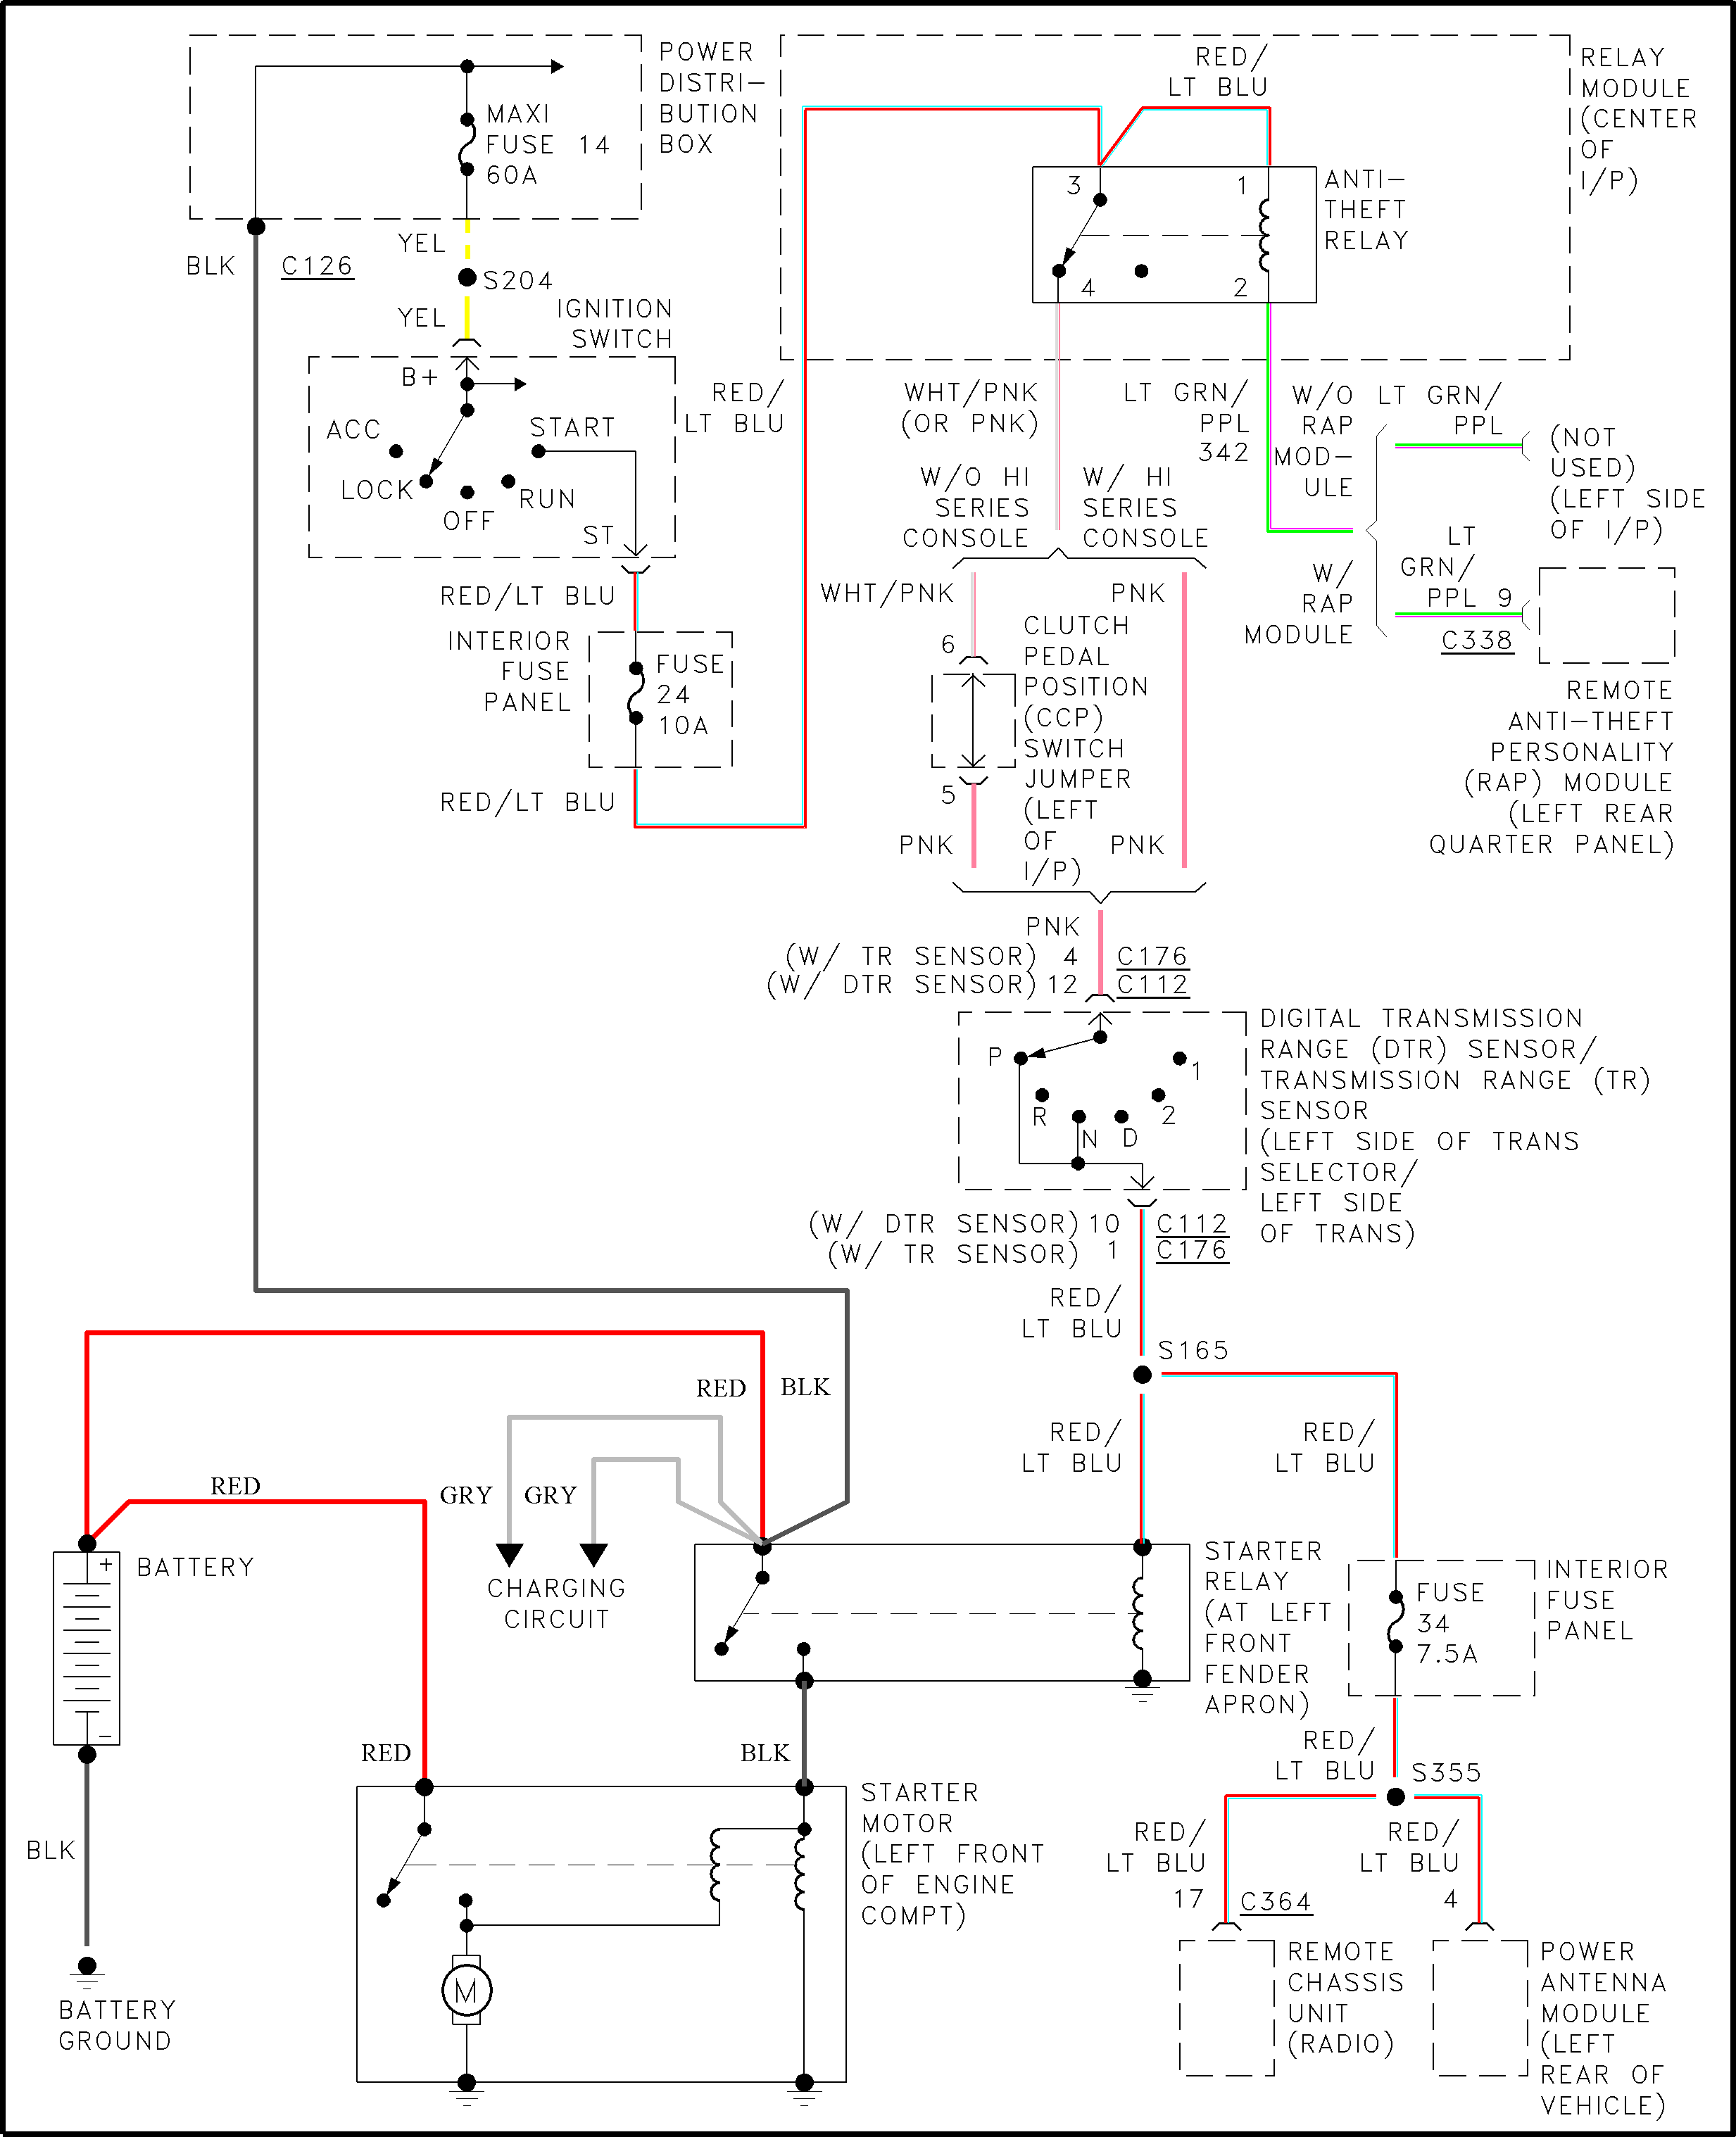 f26d0c57-ee0f-440e-bb49-fd8f8a04a7f3_ford starting circuit.png